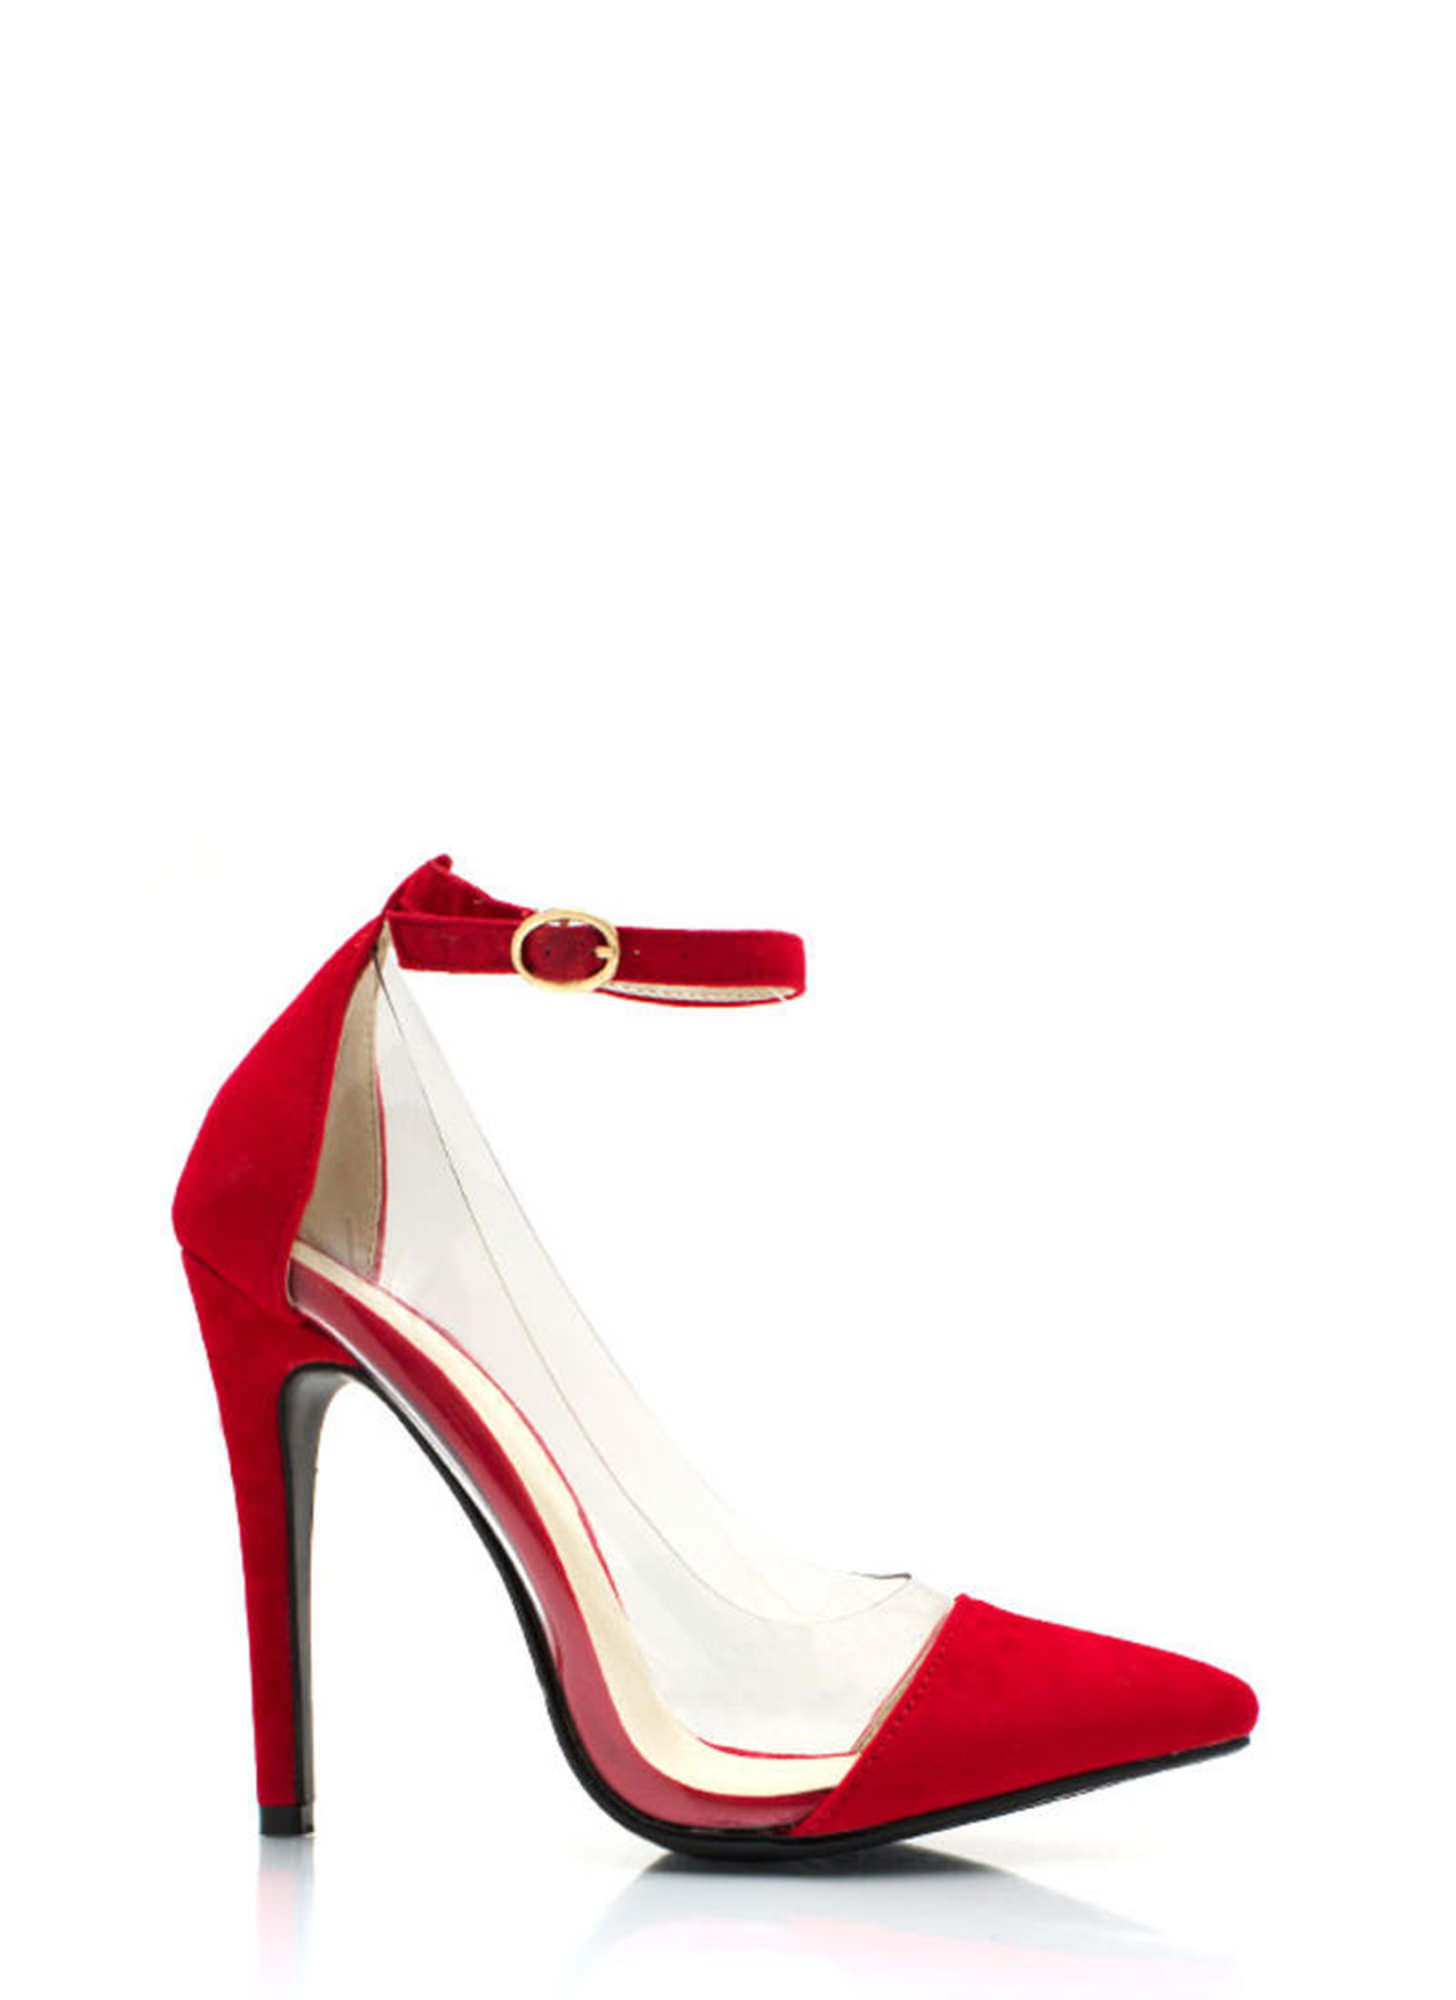 Show Some Skin Cap Toe Heels RED